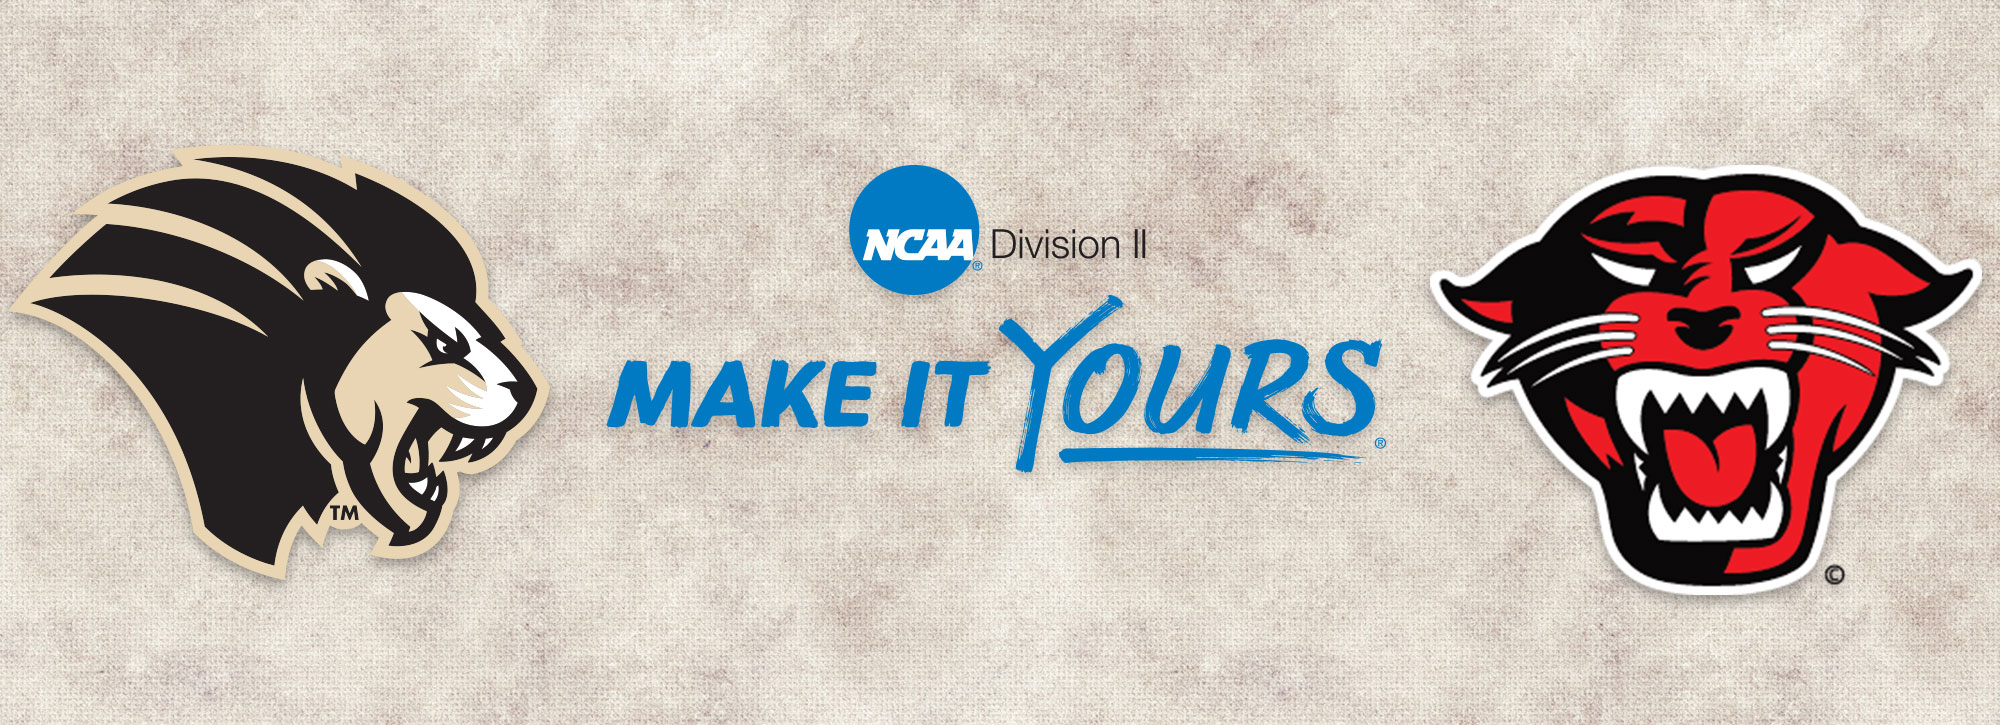 Davenport & Purdue Northwest Advance to Year Two of NCAA Division II Membership Process